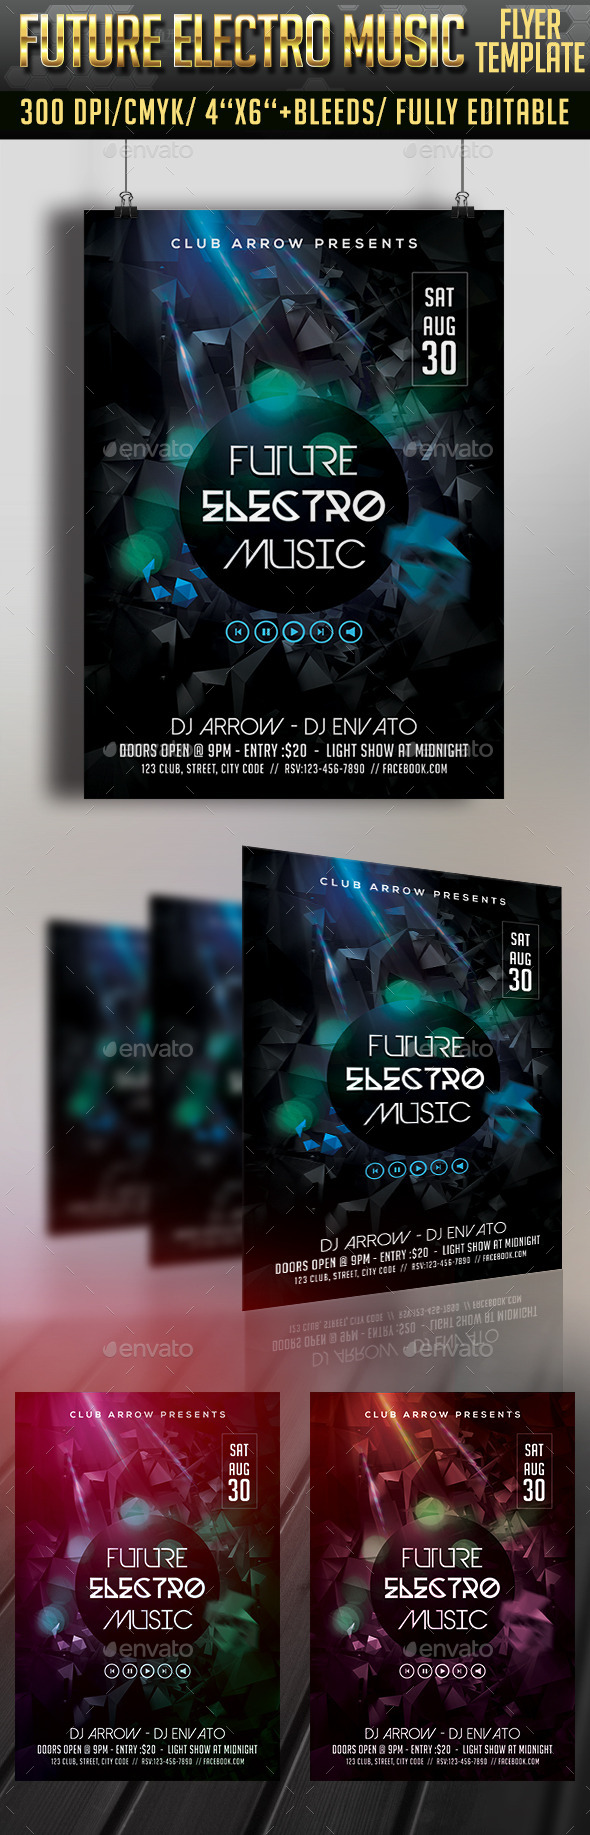 Future Electro Sounds Flyer - Clubs & Parties Events